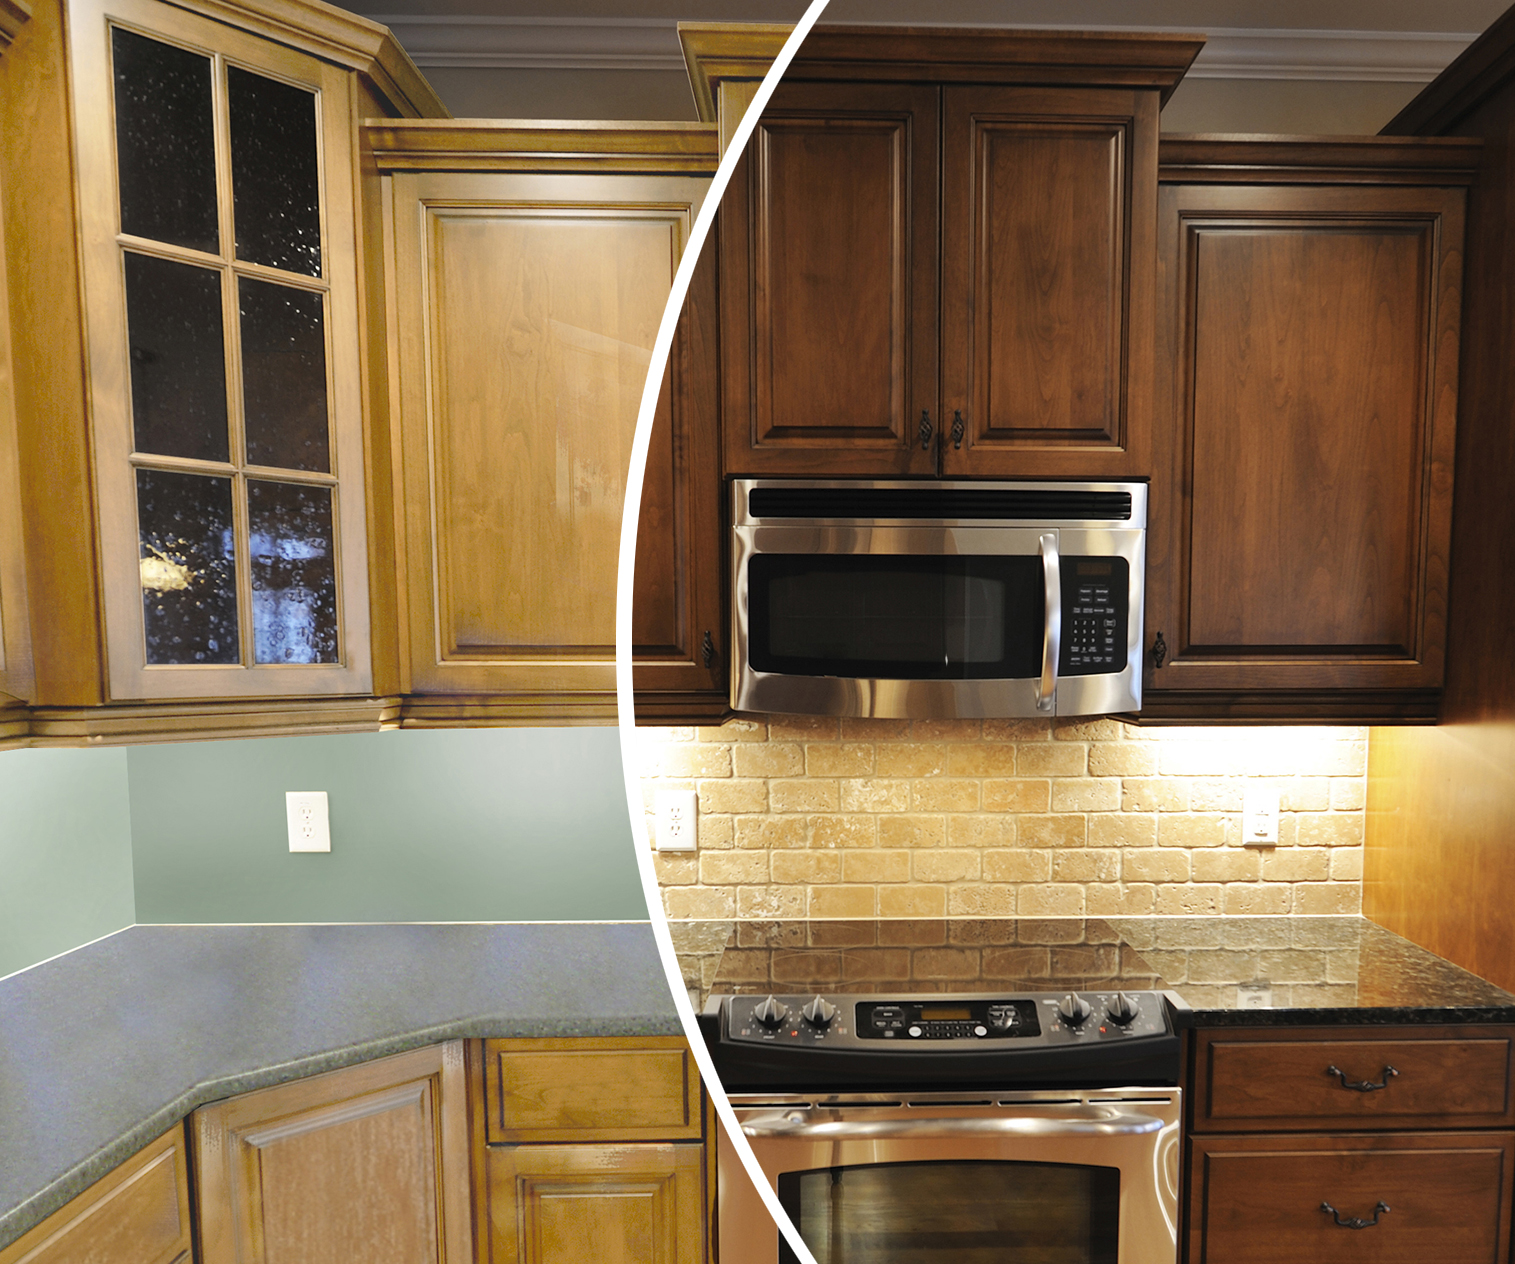 Kitchen Cabinet Refacing Nj: Cabinets Matttroy